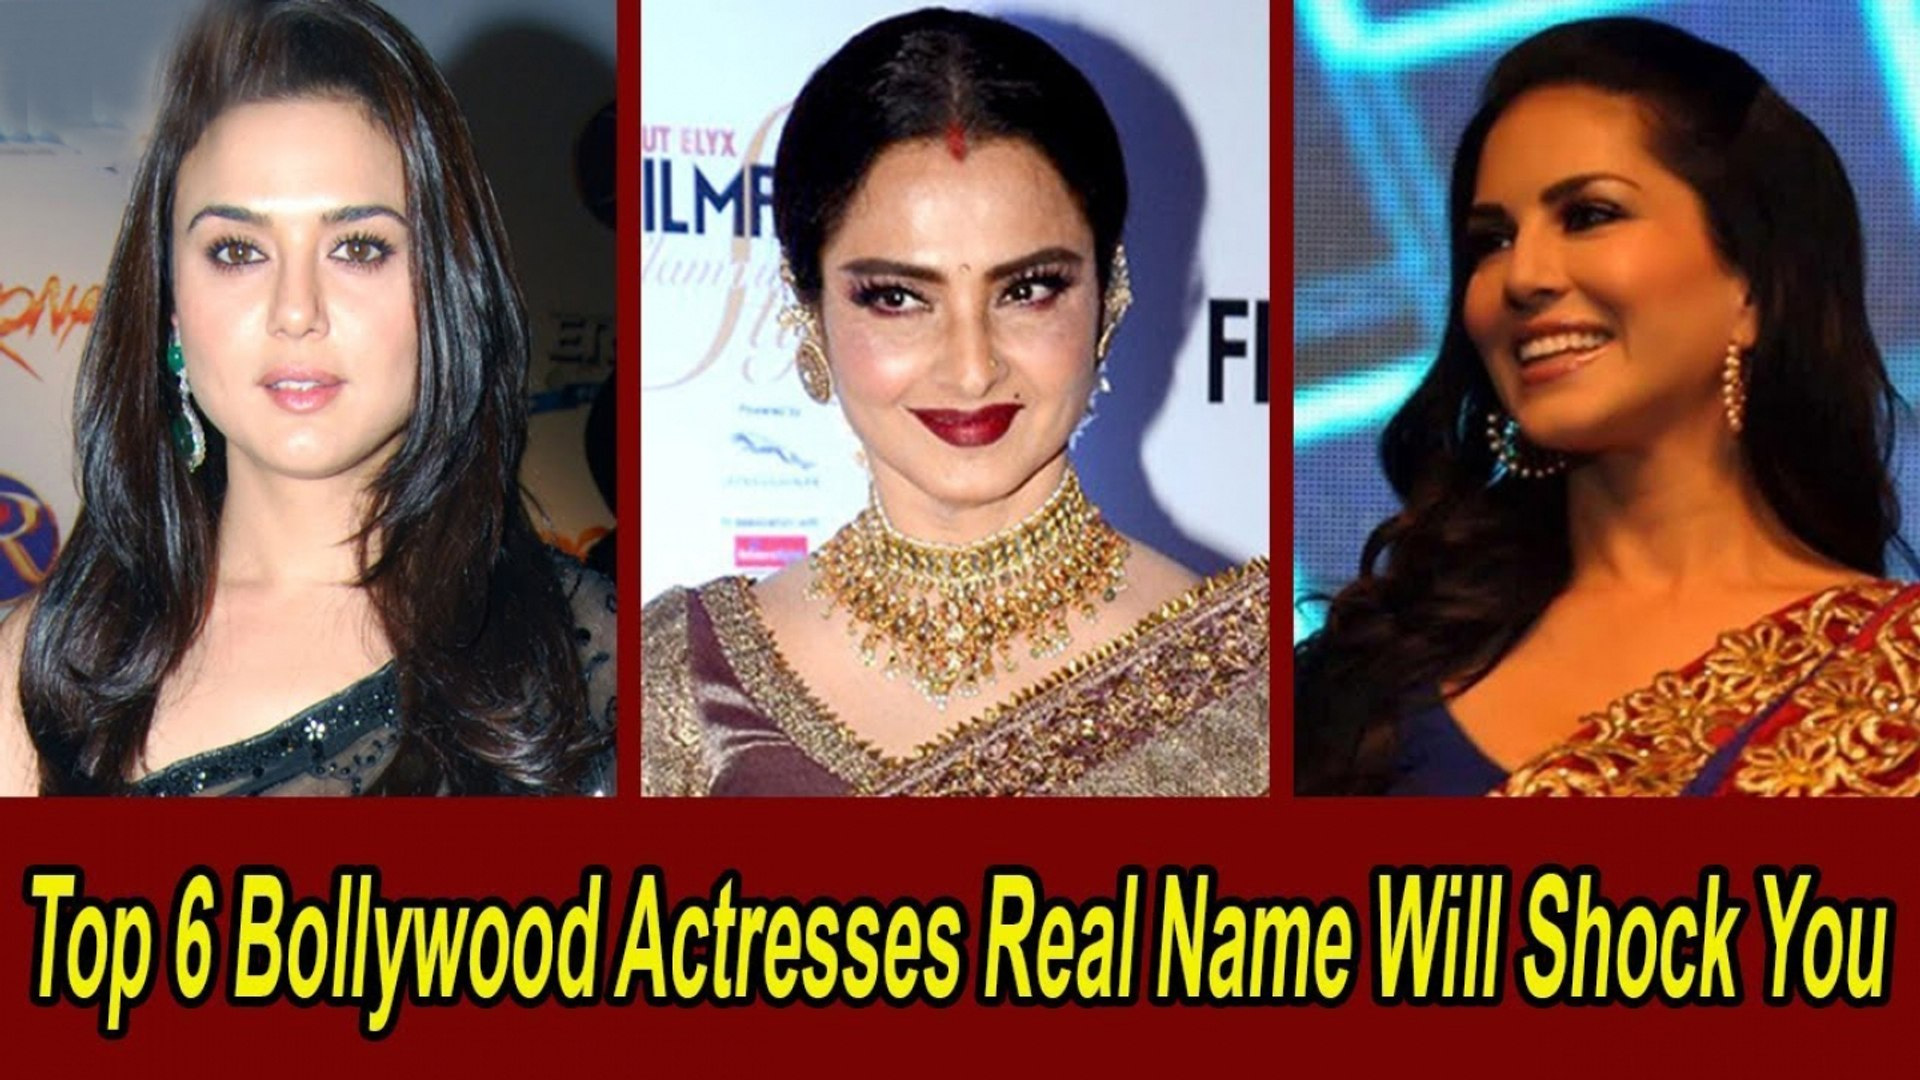 Top 6 Bollywood Actresses Real Name Will Shock You Bollywood Gossip